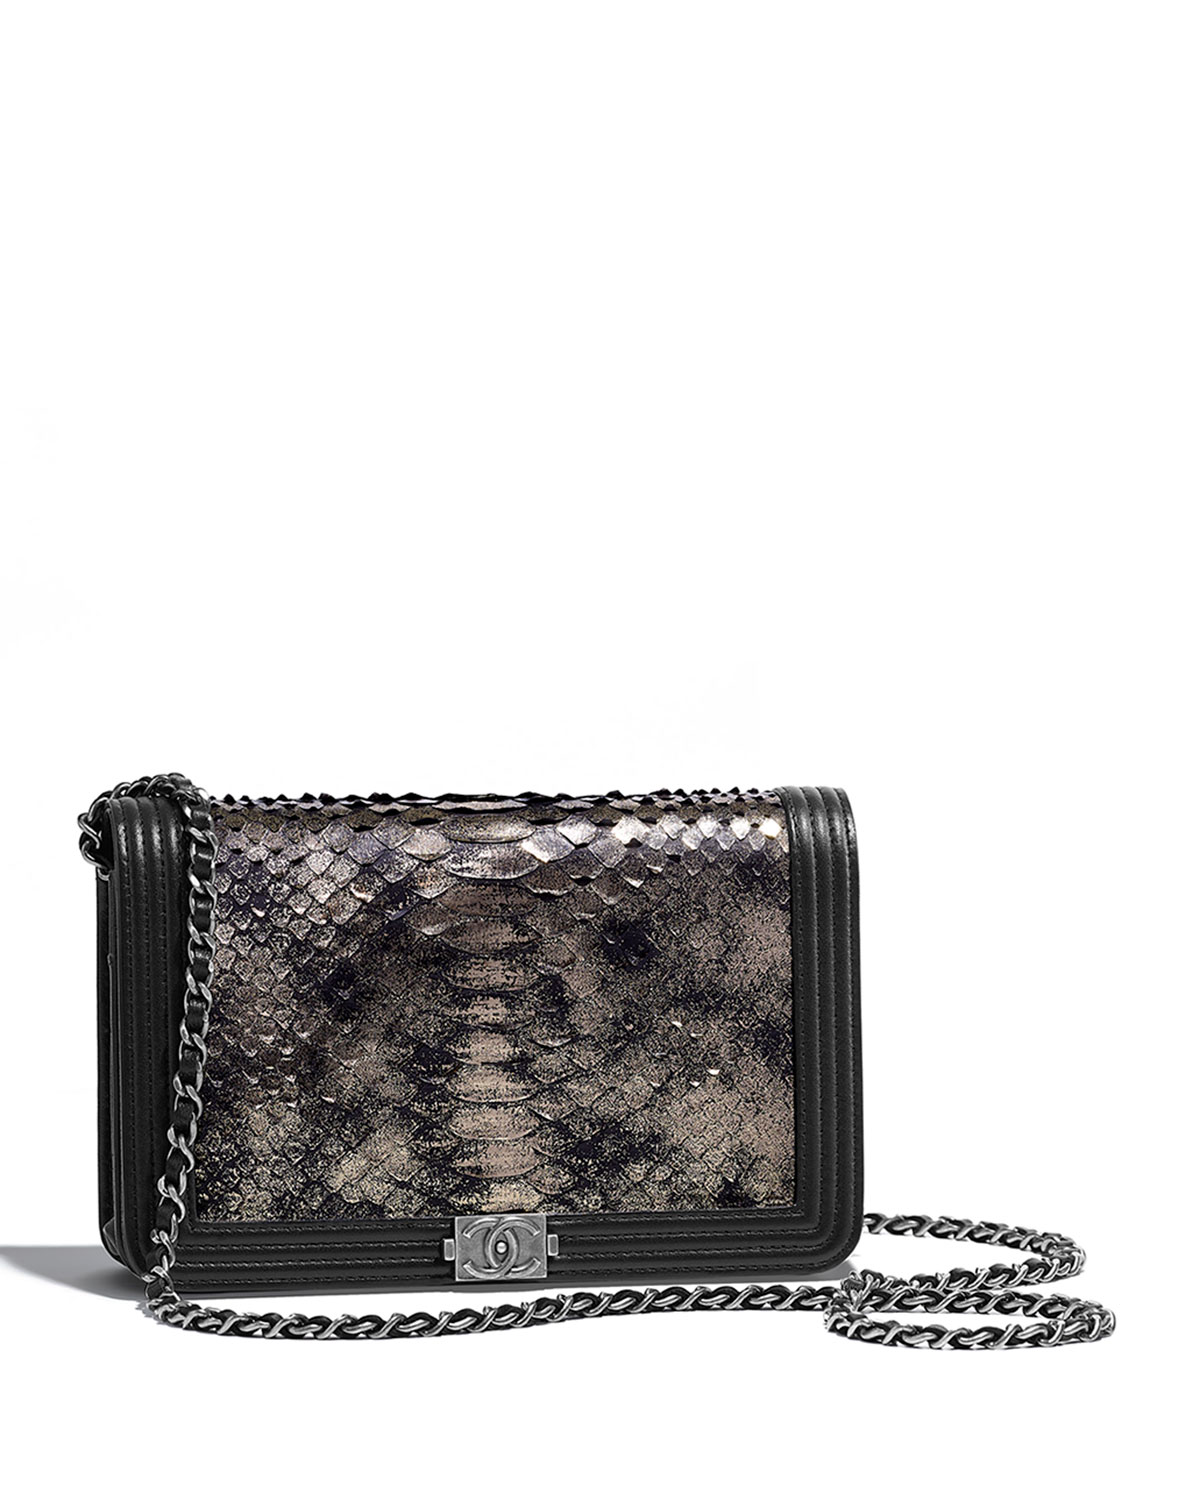 be857a5e1510 CHANEL BOY CHANEL WALLET ON CHAIN